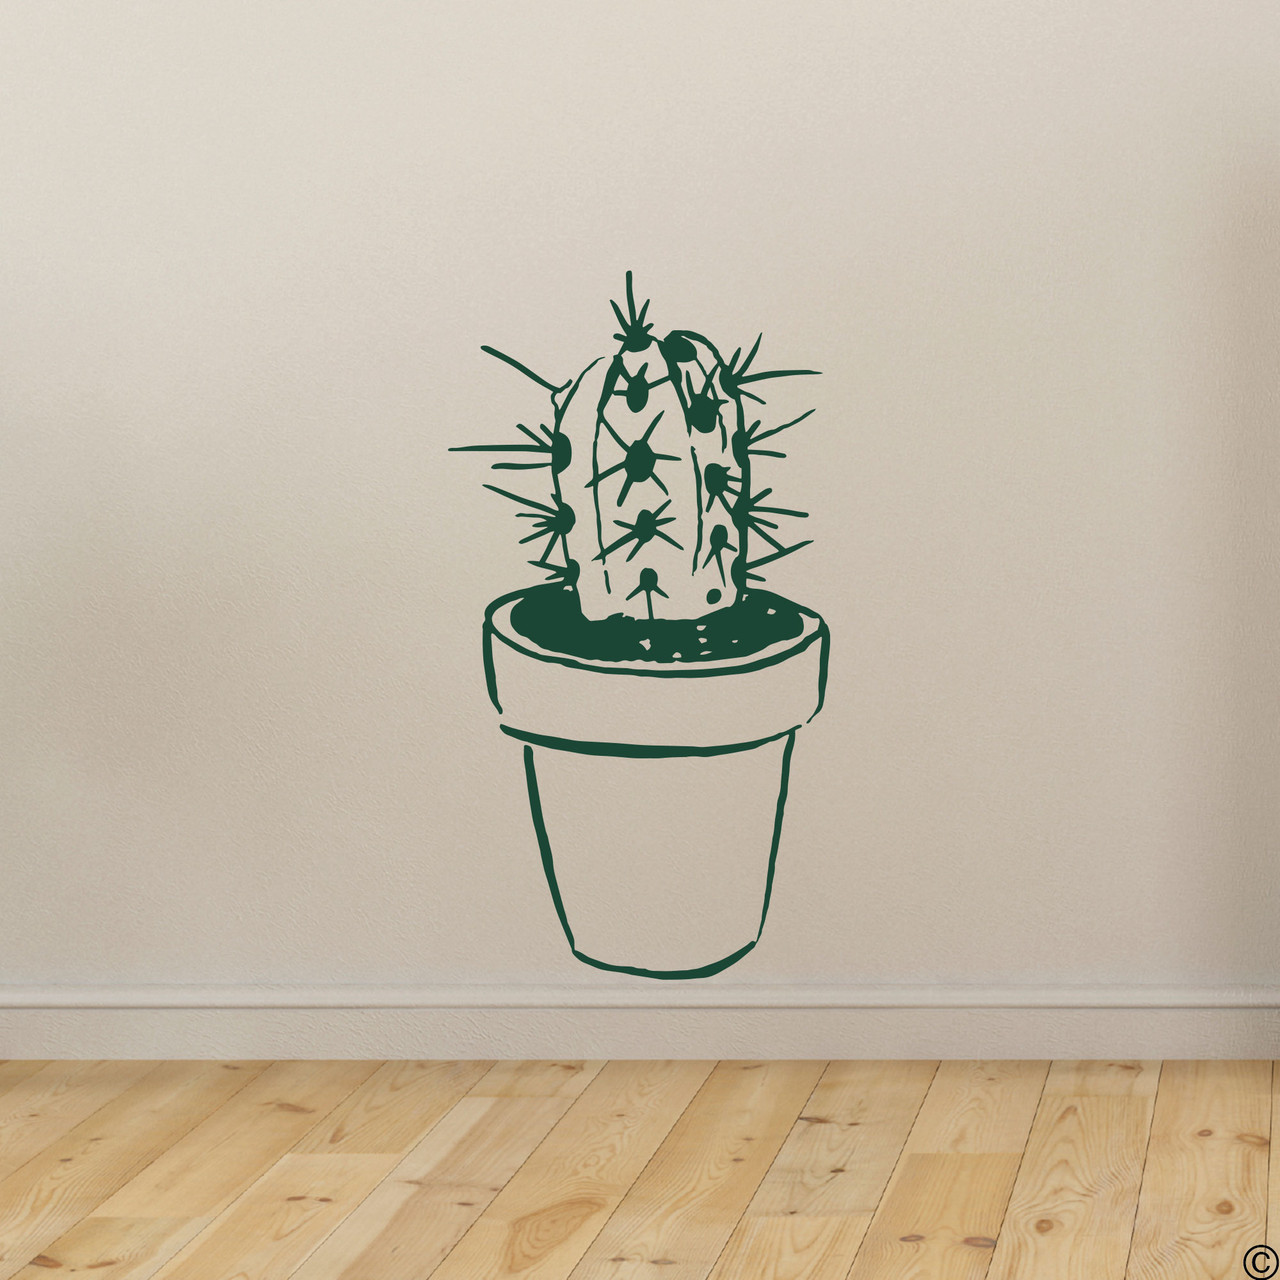 The hand drawn potted cactus wall decal in dark green vinyl color.